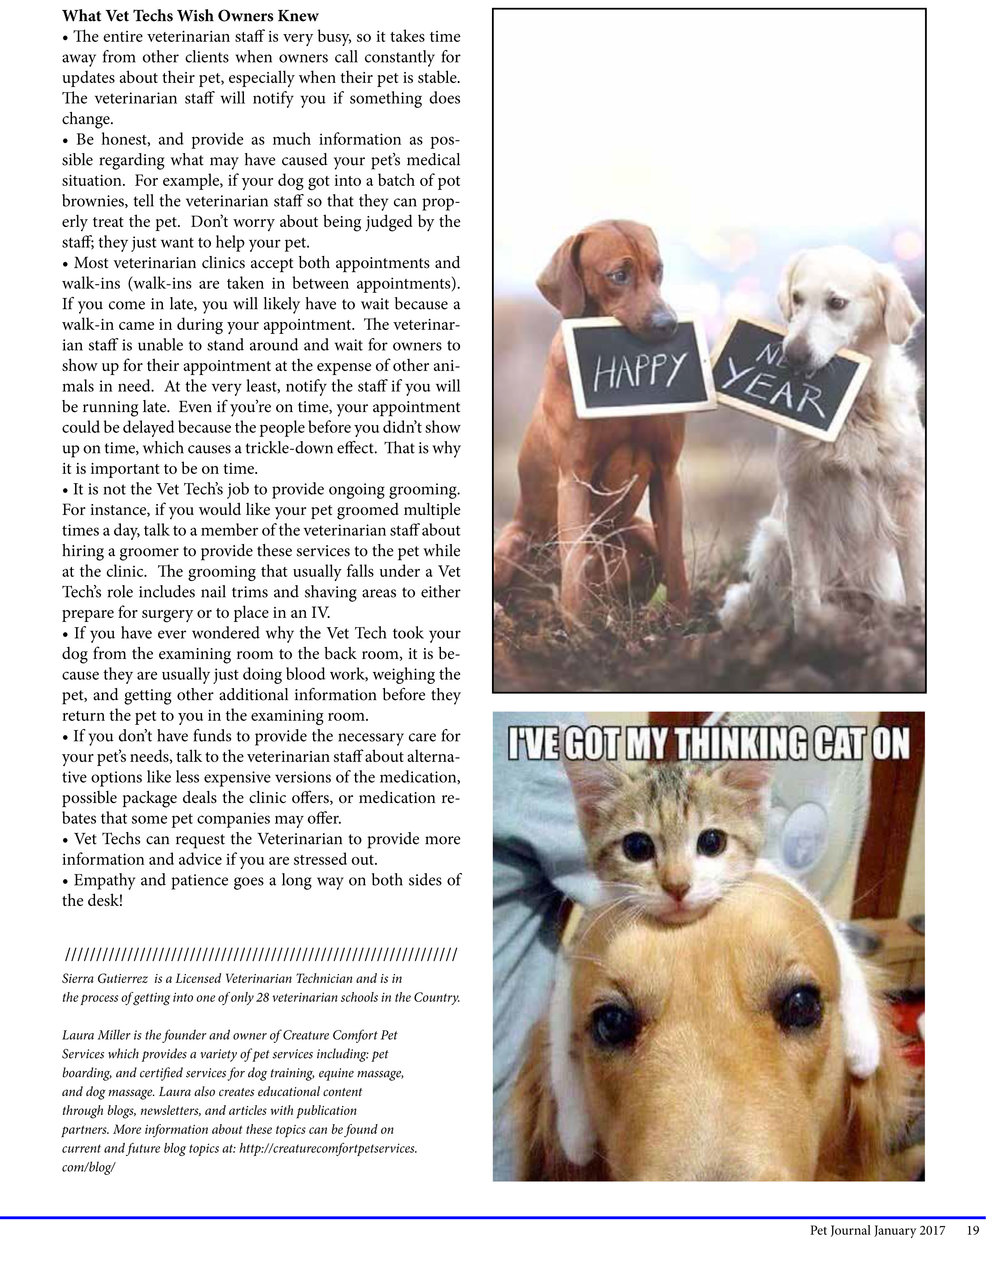 Pet Journal January 2017-21.jpg